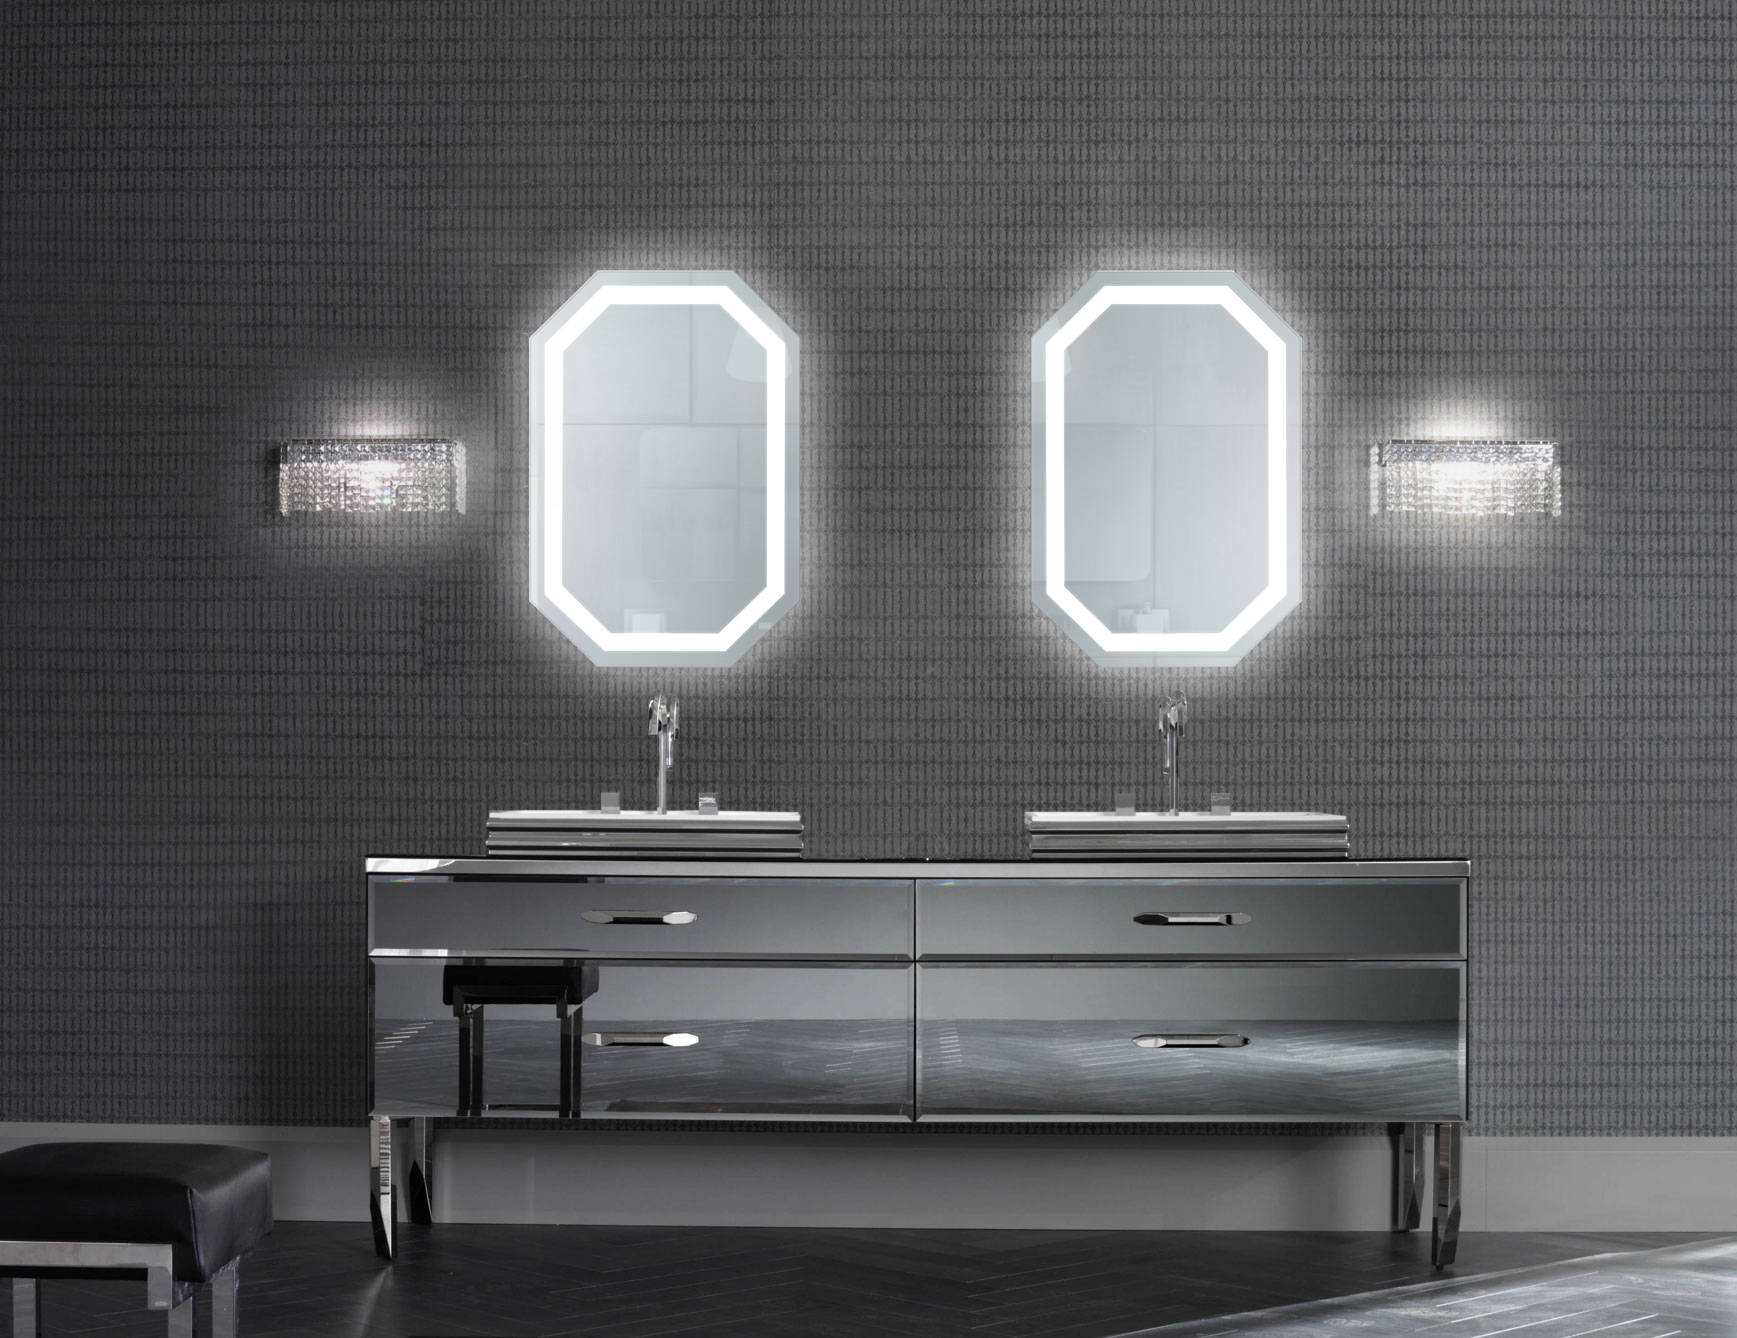 Lighted Mirror Bathroom Buy Bathroom Led Lighted Mirrors Backlit Mirrors Decoraport Usa Led: Tudor 20″x 30″ LED Bathroom Mirror W/ Dimmer & Defogger